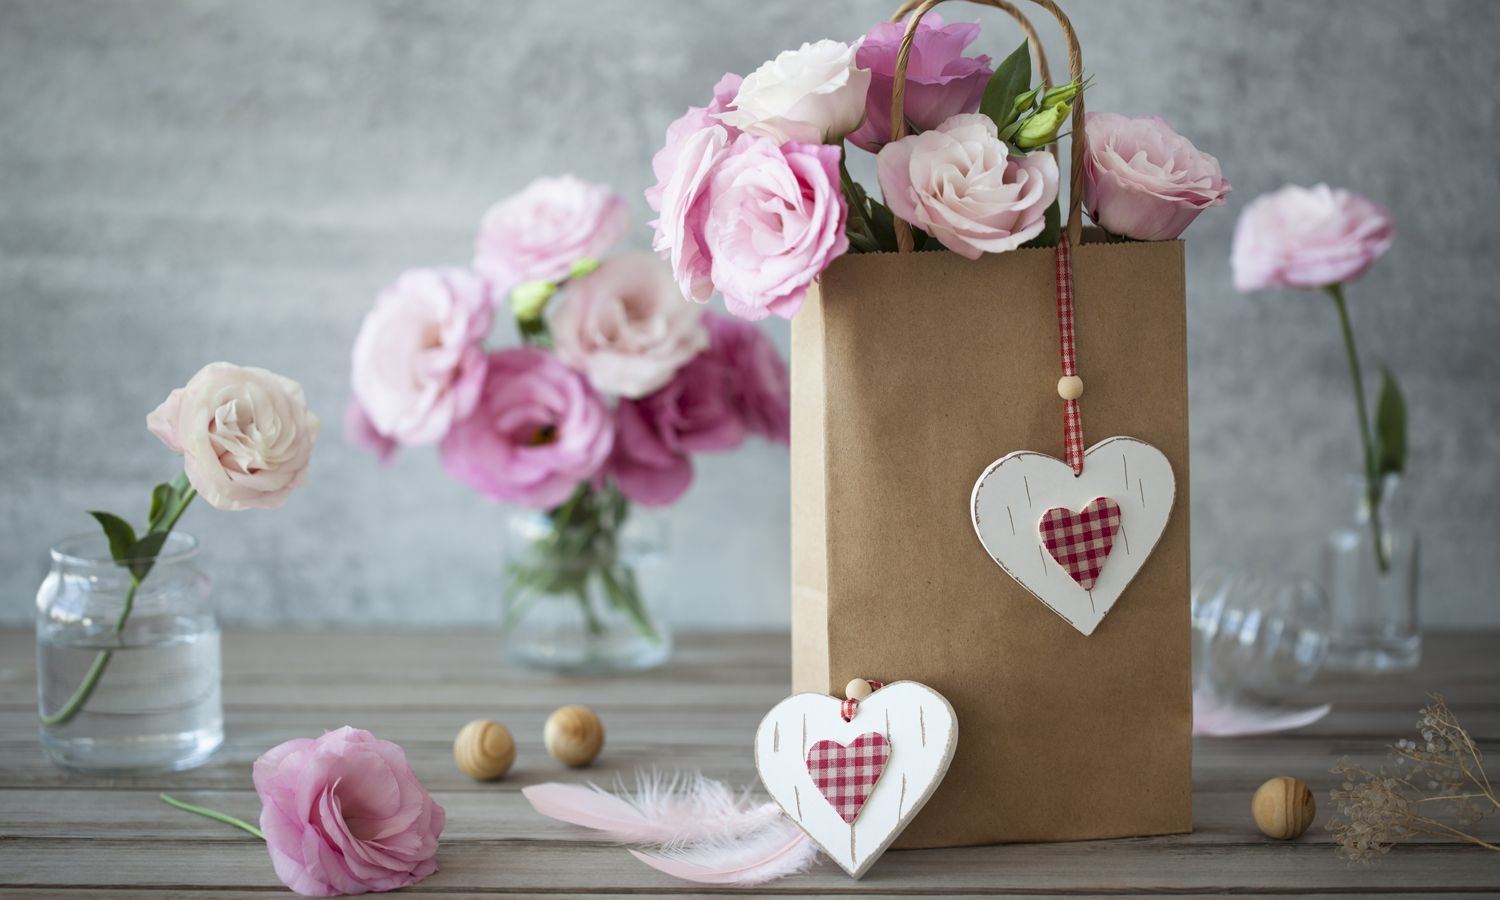 10 Valentine's Gifts She'll Actually Like